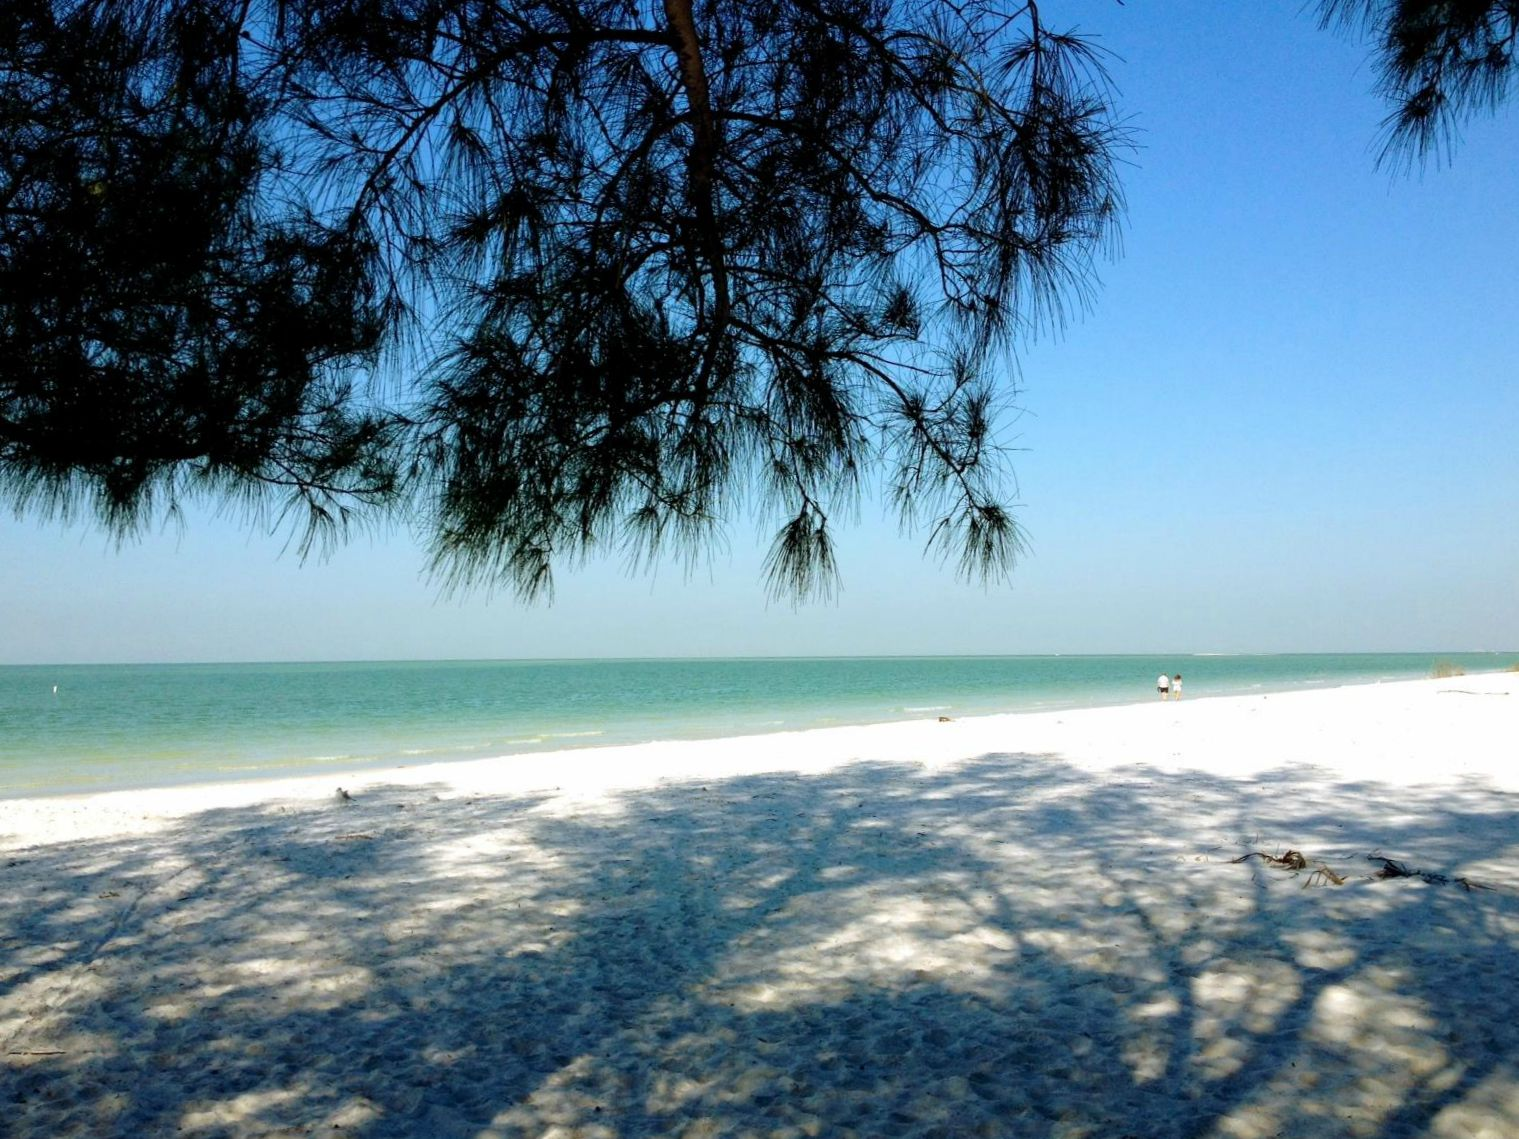 10 Top Things To Do In Clearwater Beach